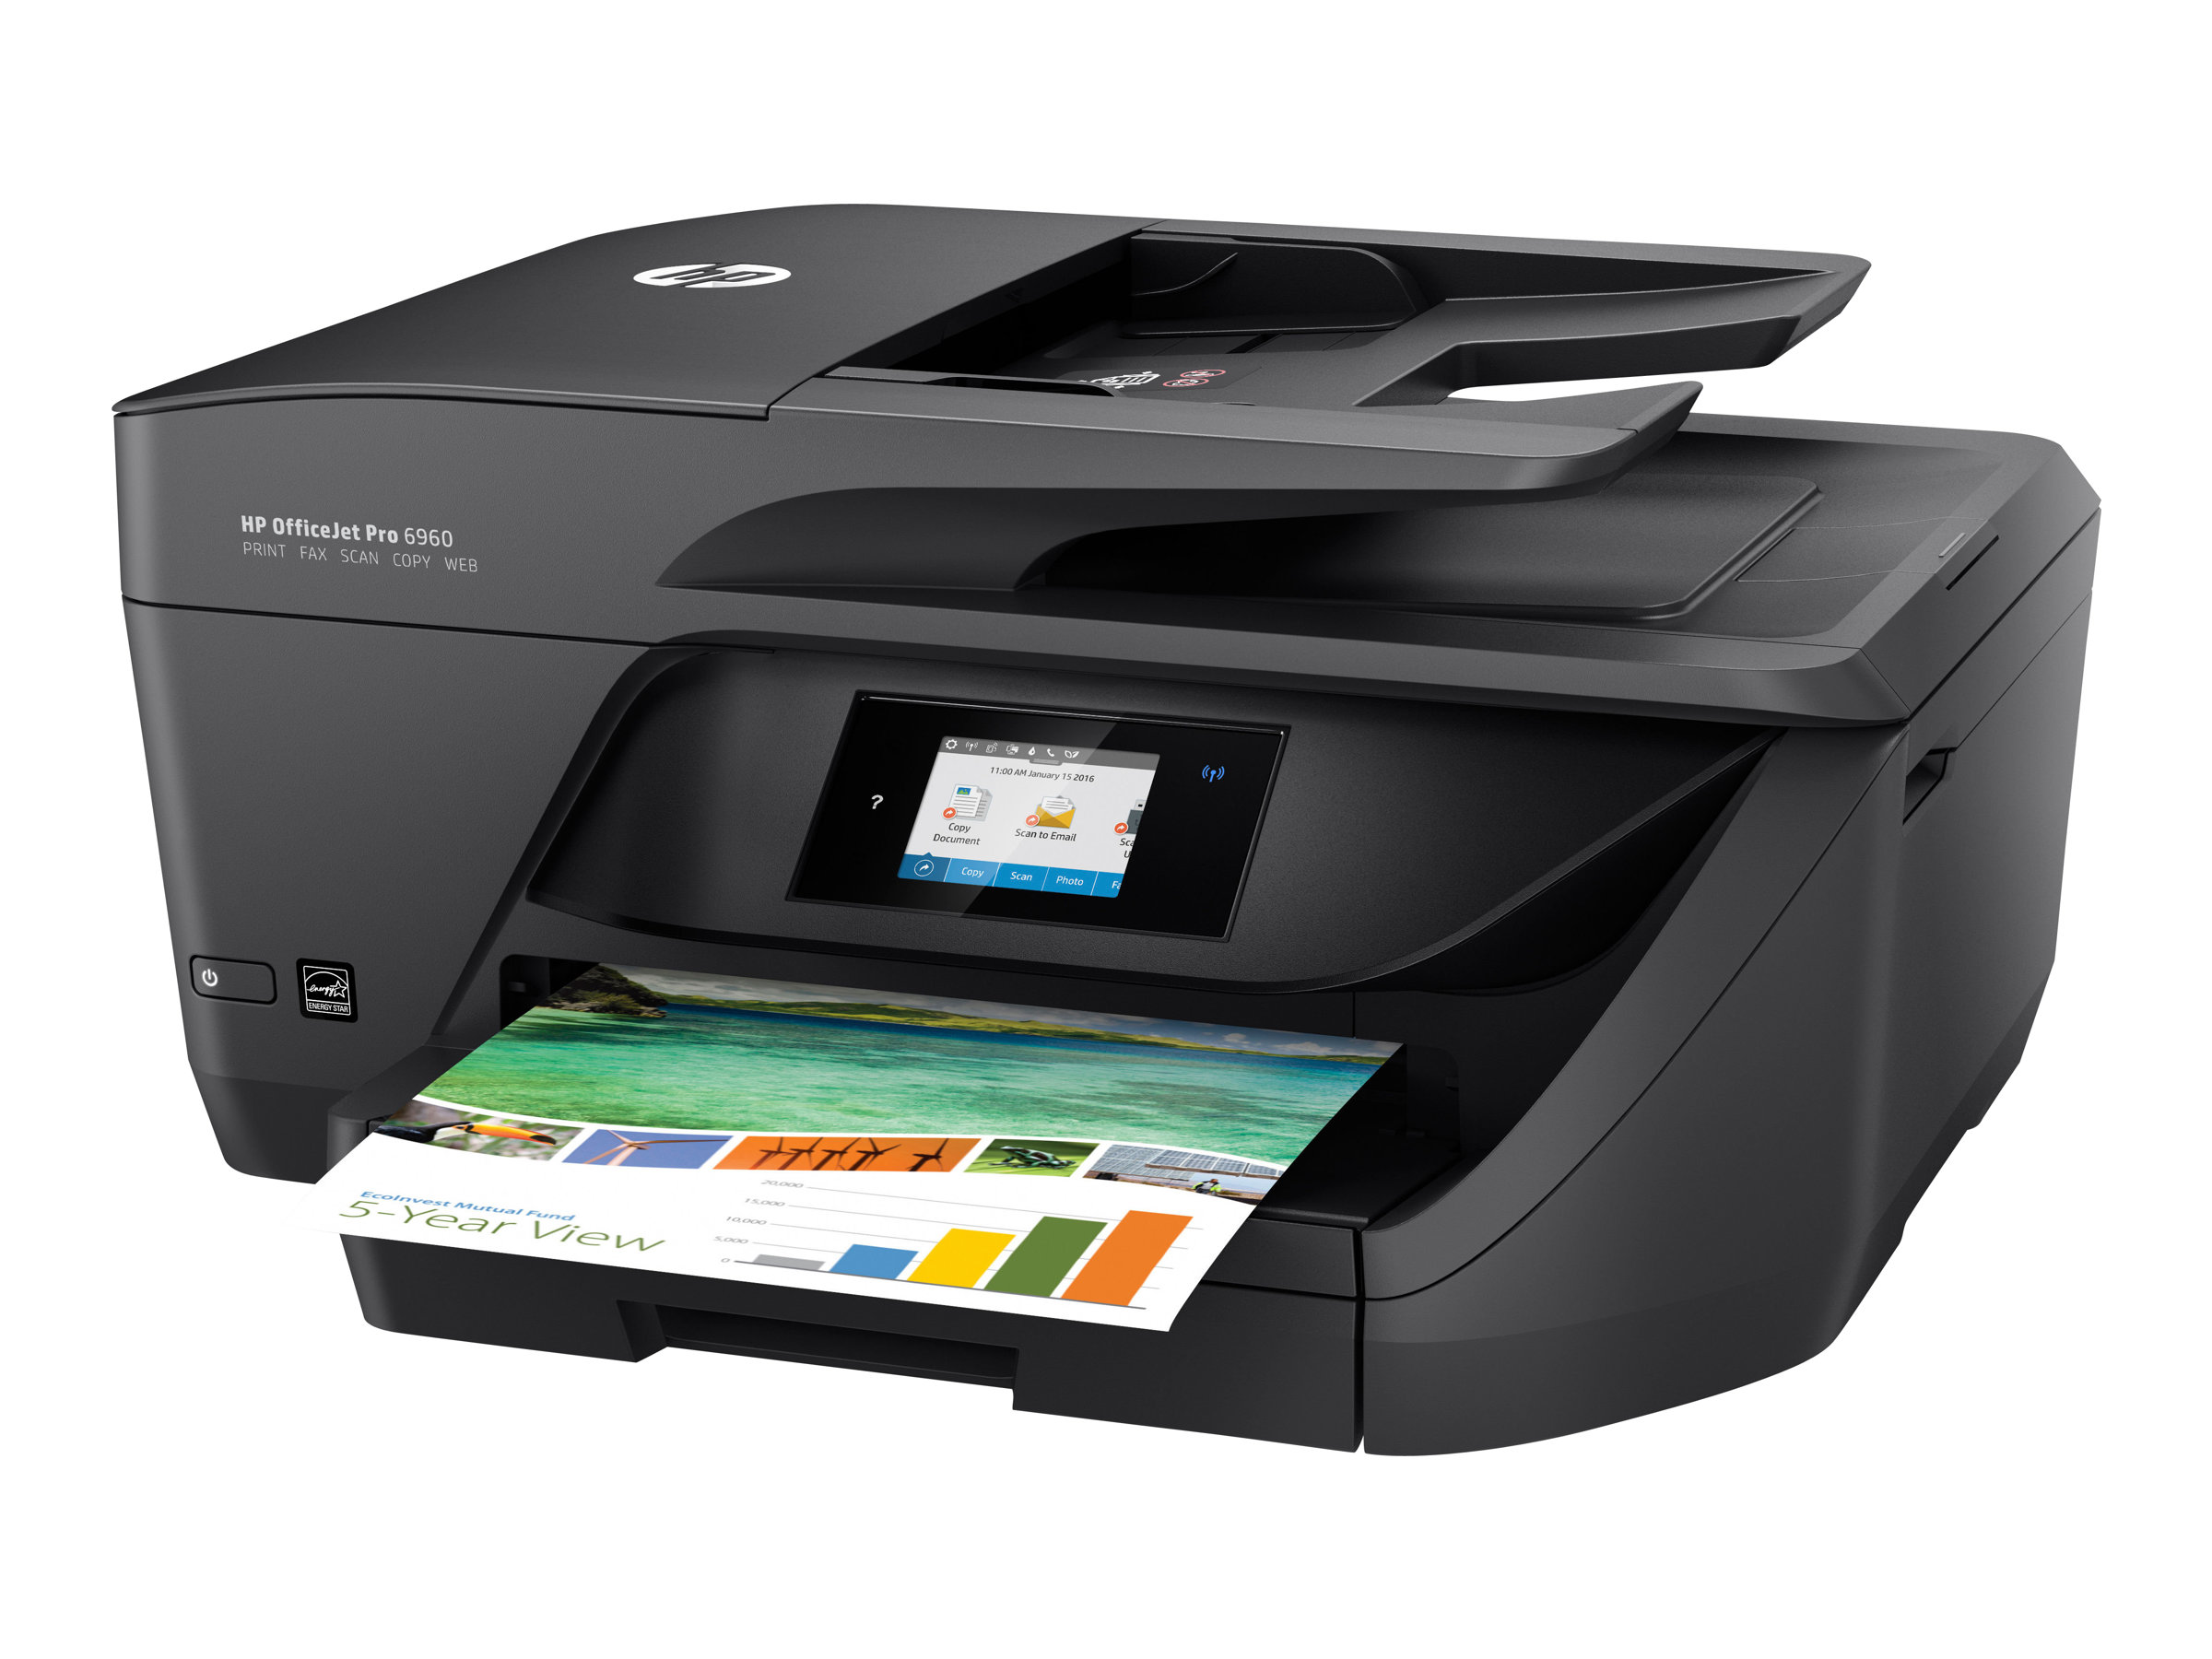 HP Officejet Pro 6960 e-All-in-One, Tinte, MFP, A4